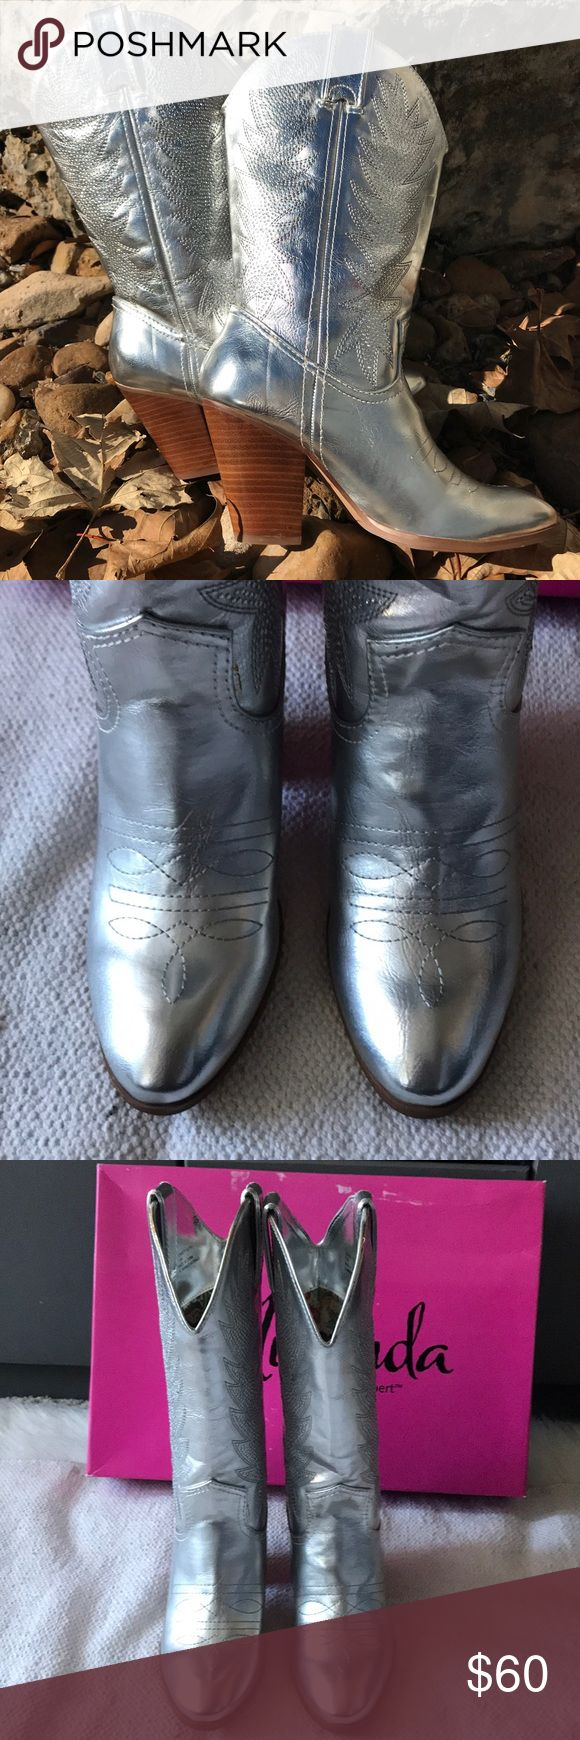 Miranda Lambert Silver Sparkle COWBOY Boots These boots are new with box, never been worn. They are absolutely gorgeous silver metallic with white rhinestone studs all the way up both sides. They are a 7 1/2 but have a room and can fit up to an eight with a thin sock. Heel is 3 1/2 inches high. Shaft height is 10 1/2 inches, Opening is 15 inches around. I have big calves and I can fit them fine. Miranda Lambert Shoes Heeled Boots